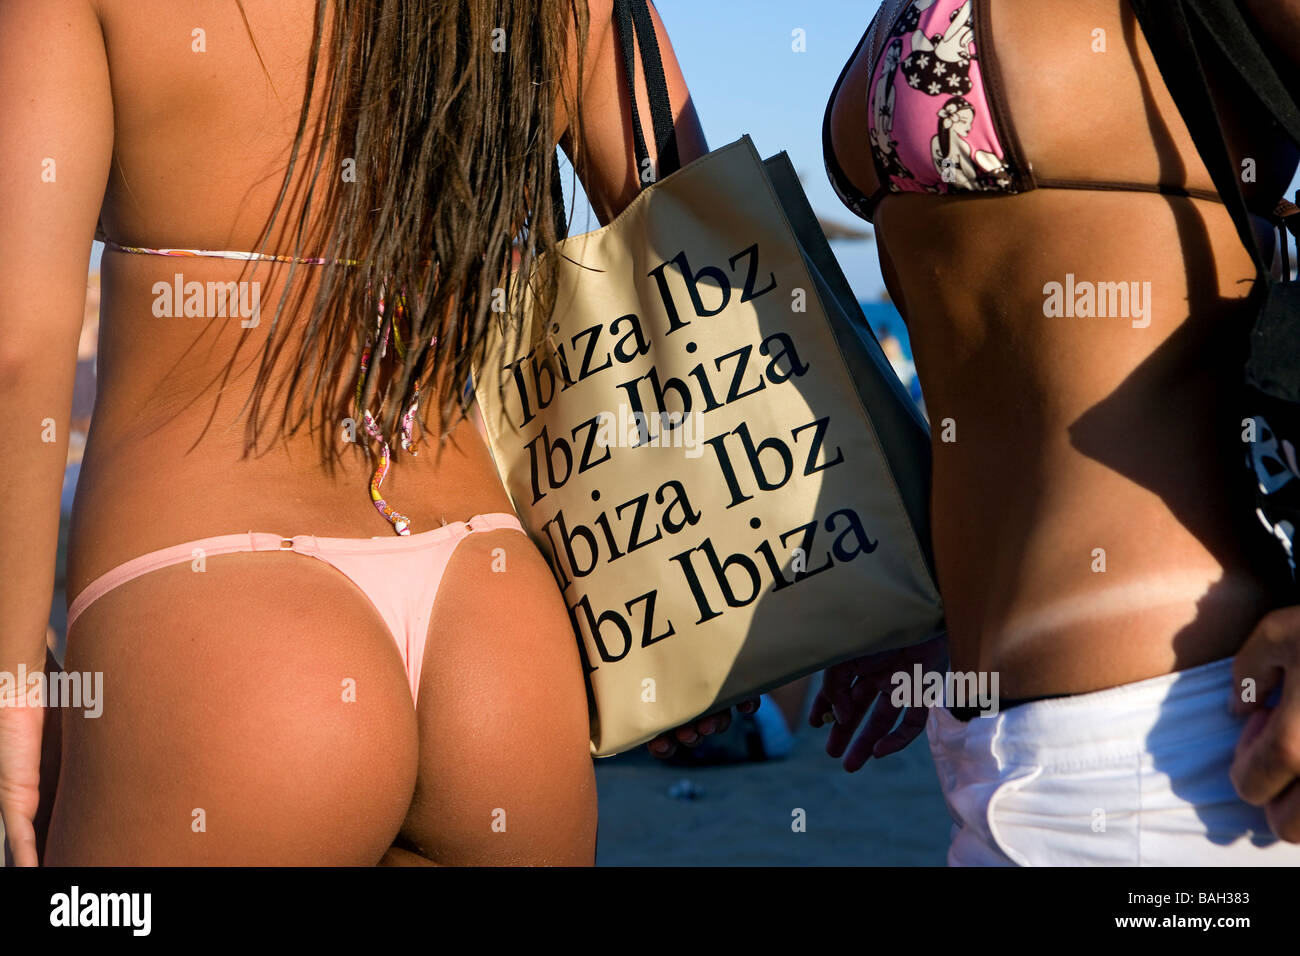 46b27b4b45d0 String Swimsuit Stock Photos & String Swimsuit Stock Images - Alamy